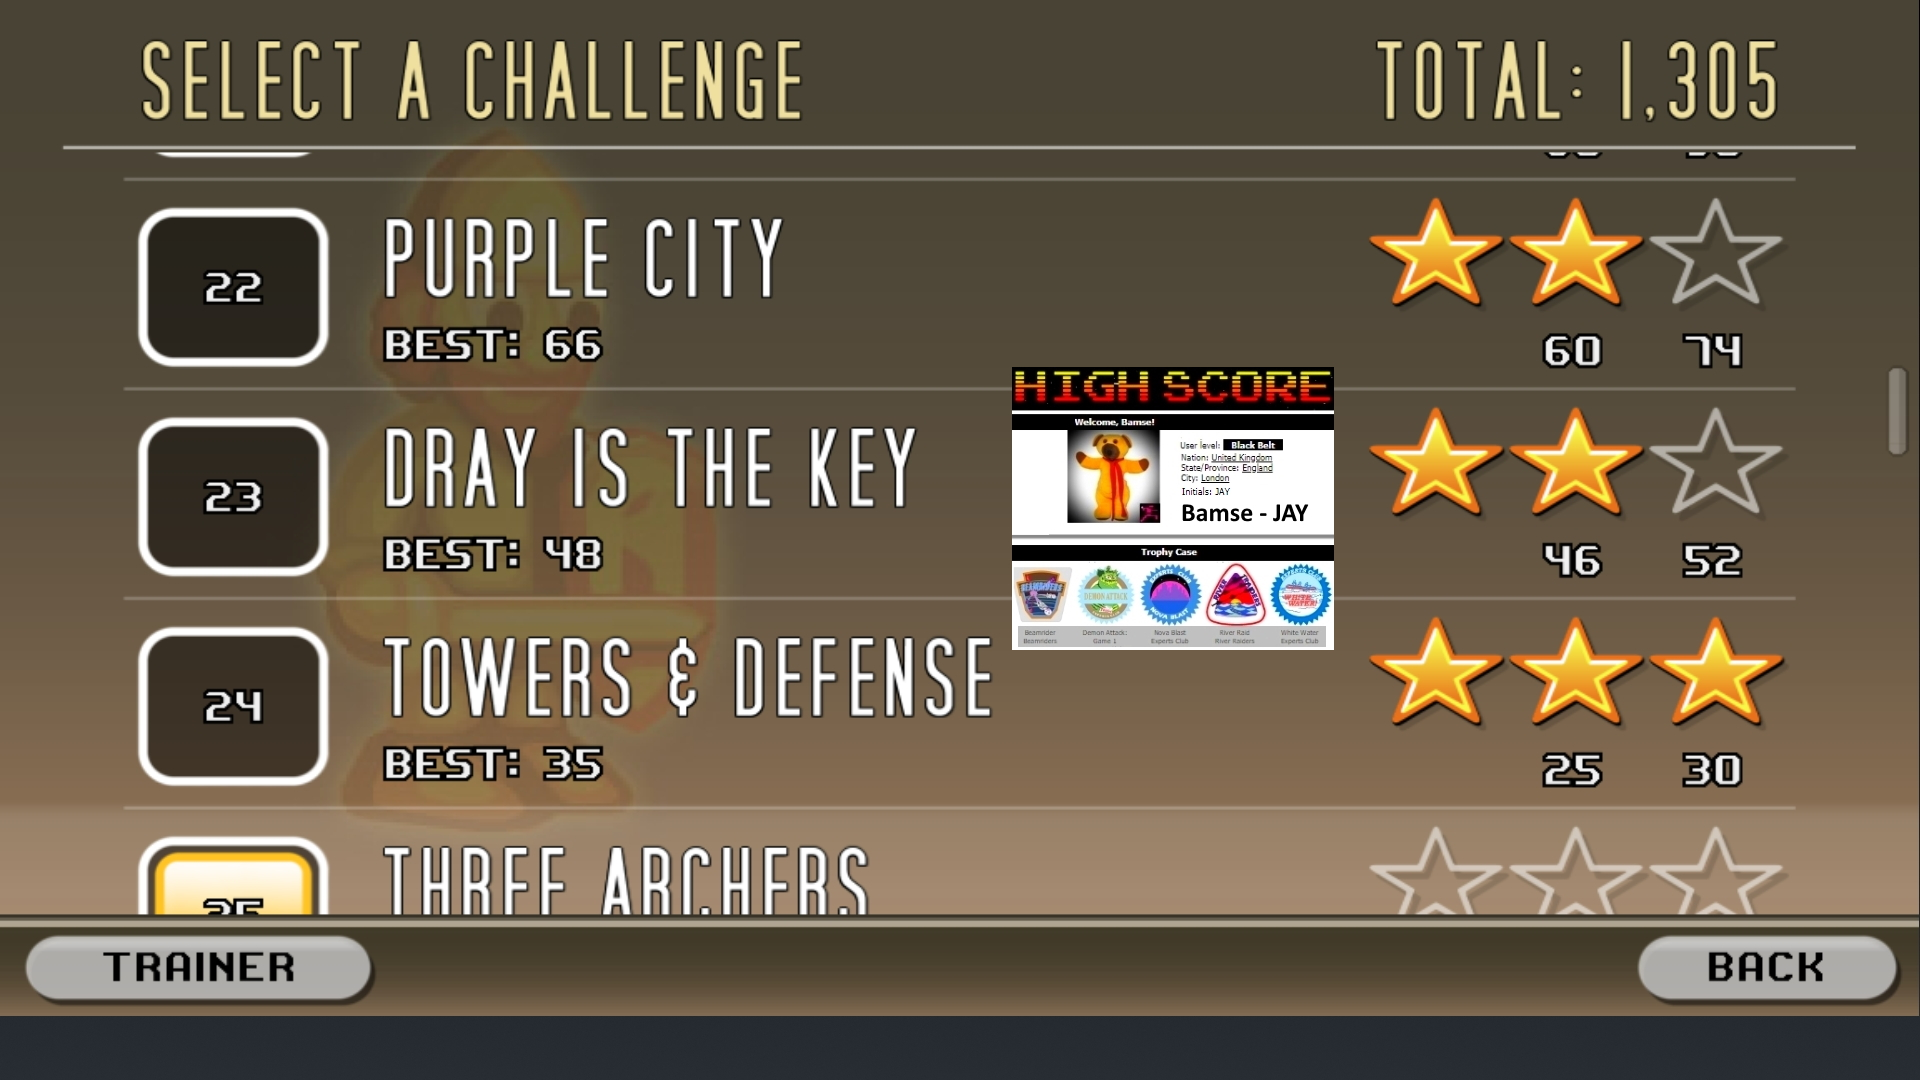 Castle Smasher: Challenges: 23 Dray Is The Key 48 points